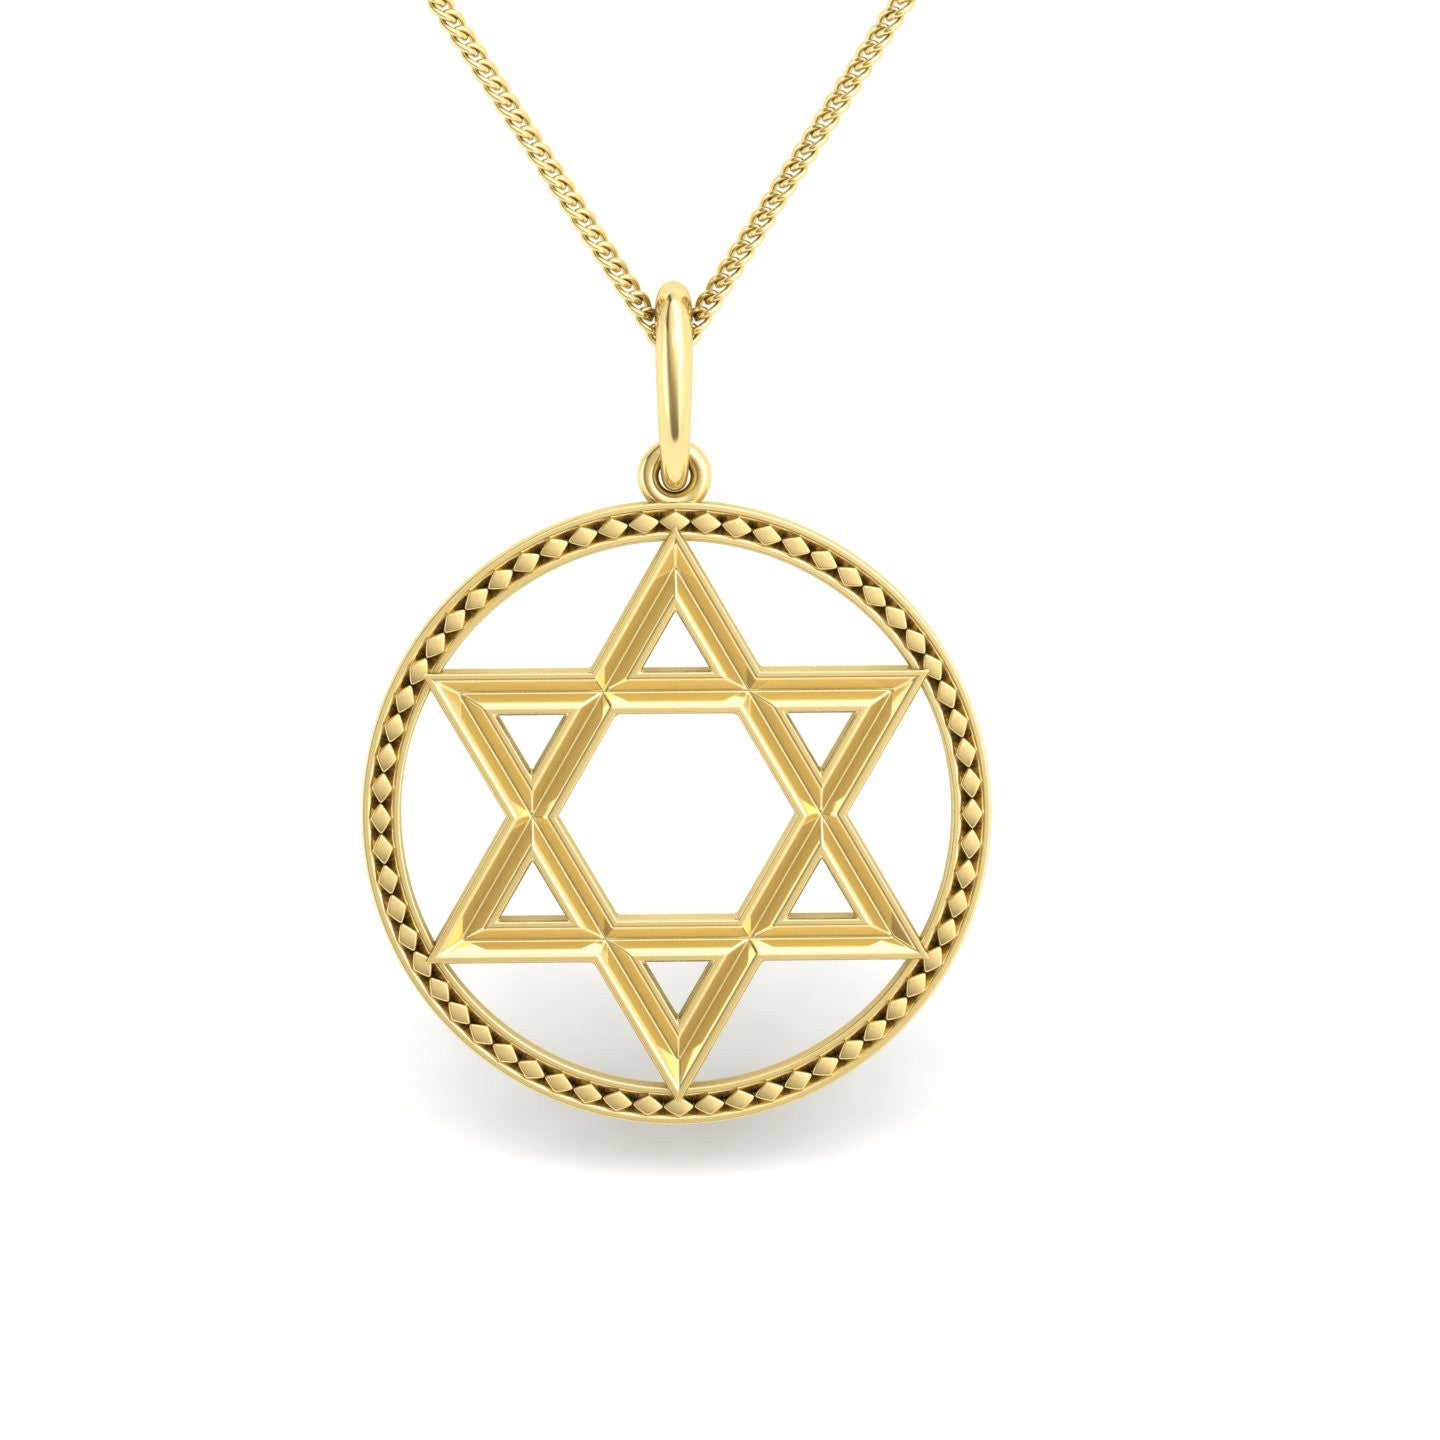 david star necklace karat jewish of yellow vermeil products magen gold adornia convertible closed no